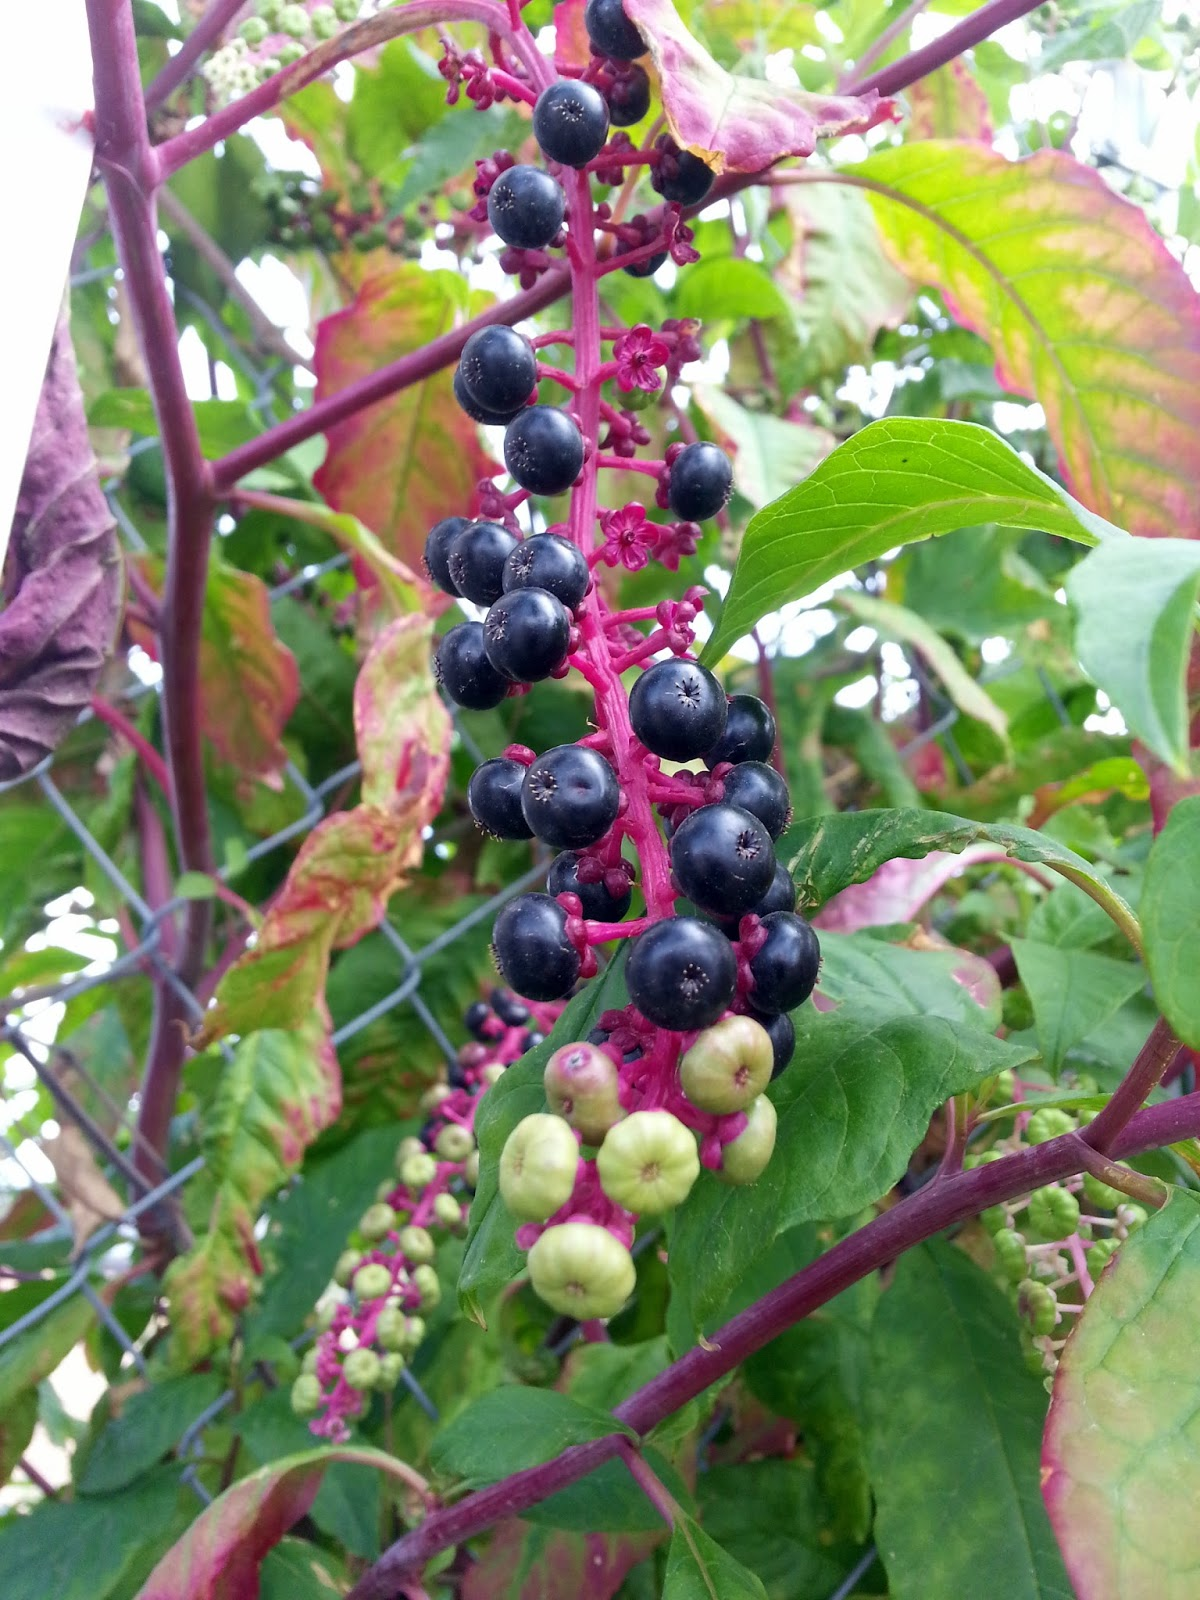 Ben S Journal Name That Plant Red Stems With Clusters Of Berries